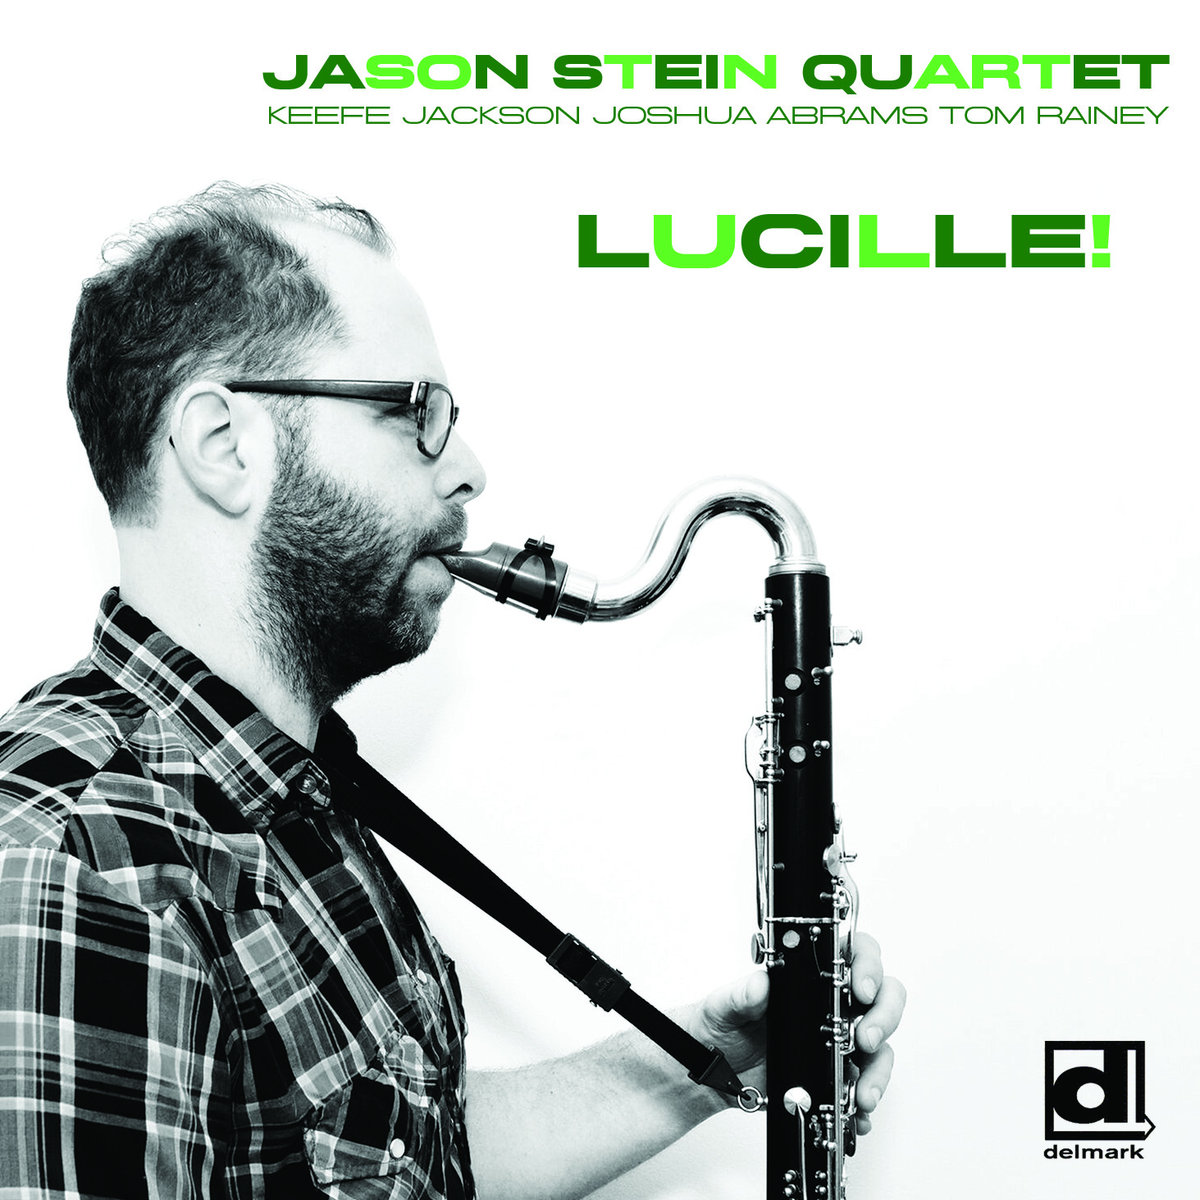 Album: Lucille! - Label: delmark recordsRelease date: 2017Jason stein (bass clarinet)keefe jackson (tenor saxophone)josh abrams (bass)tom rainey (drums)